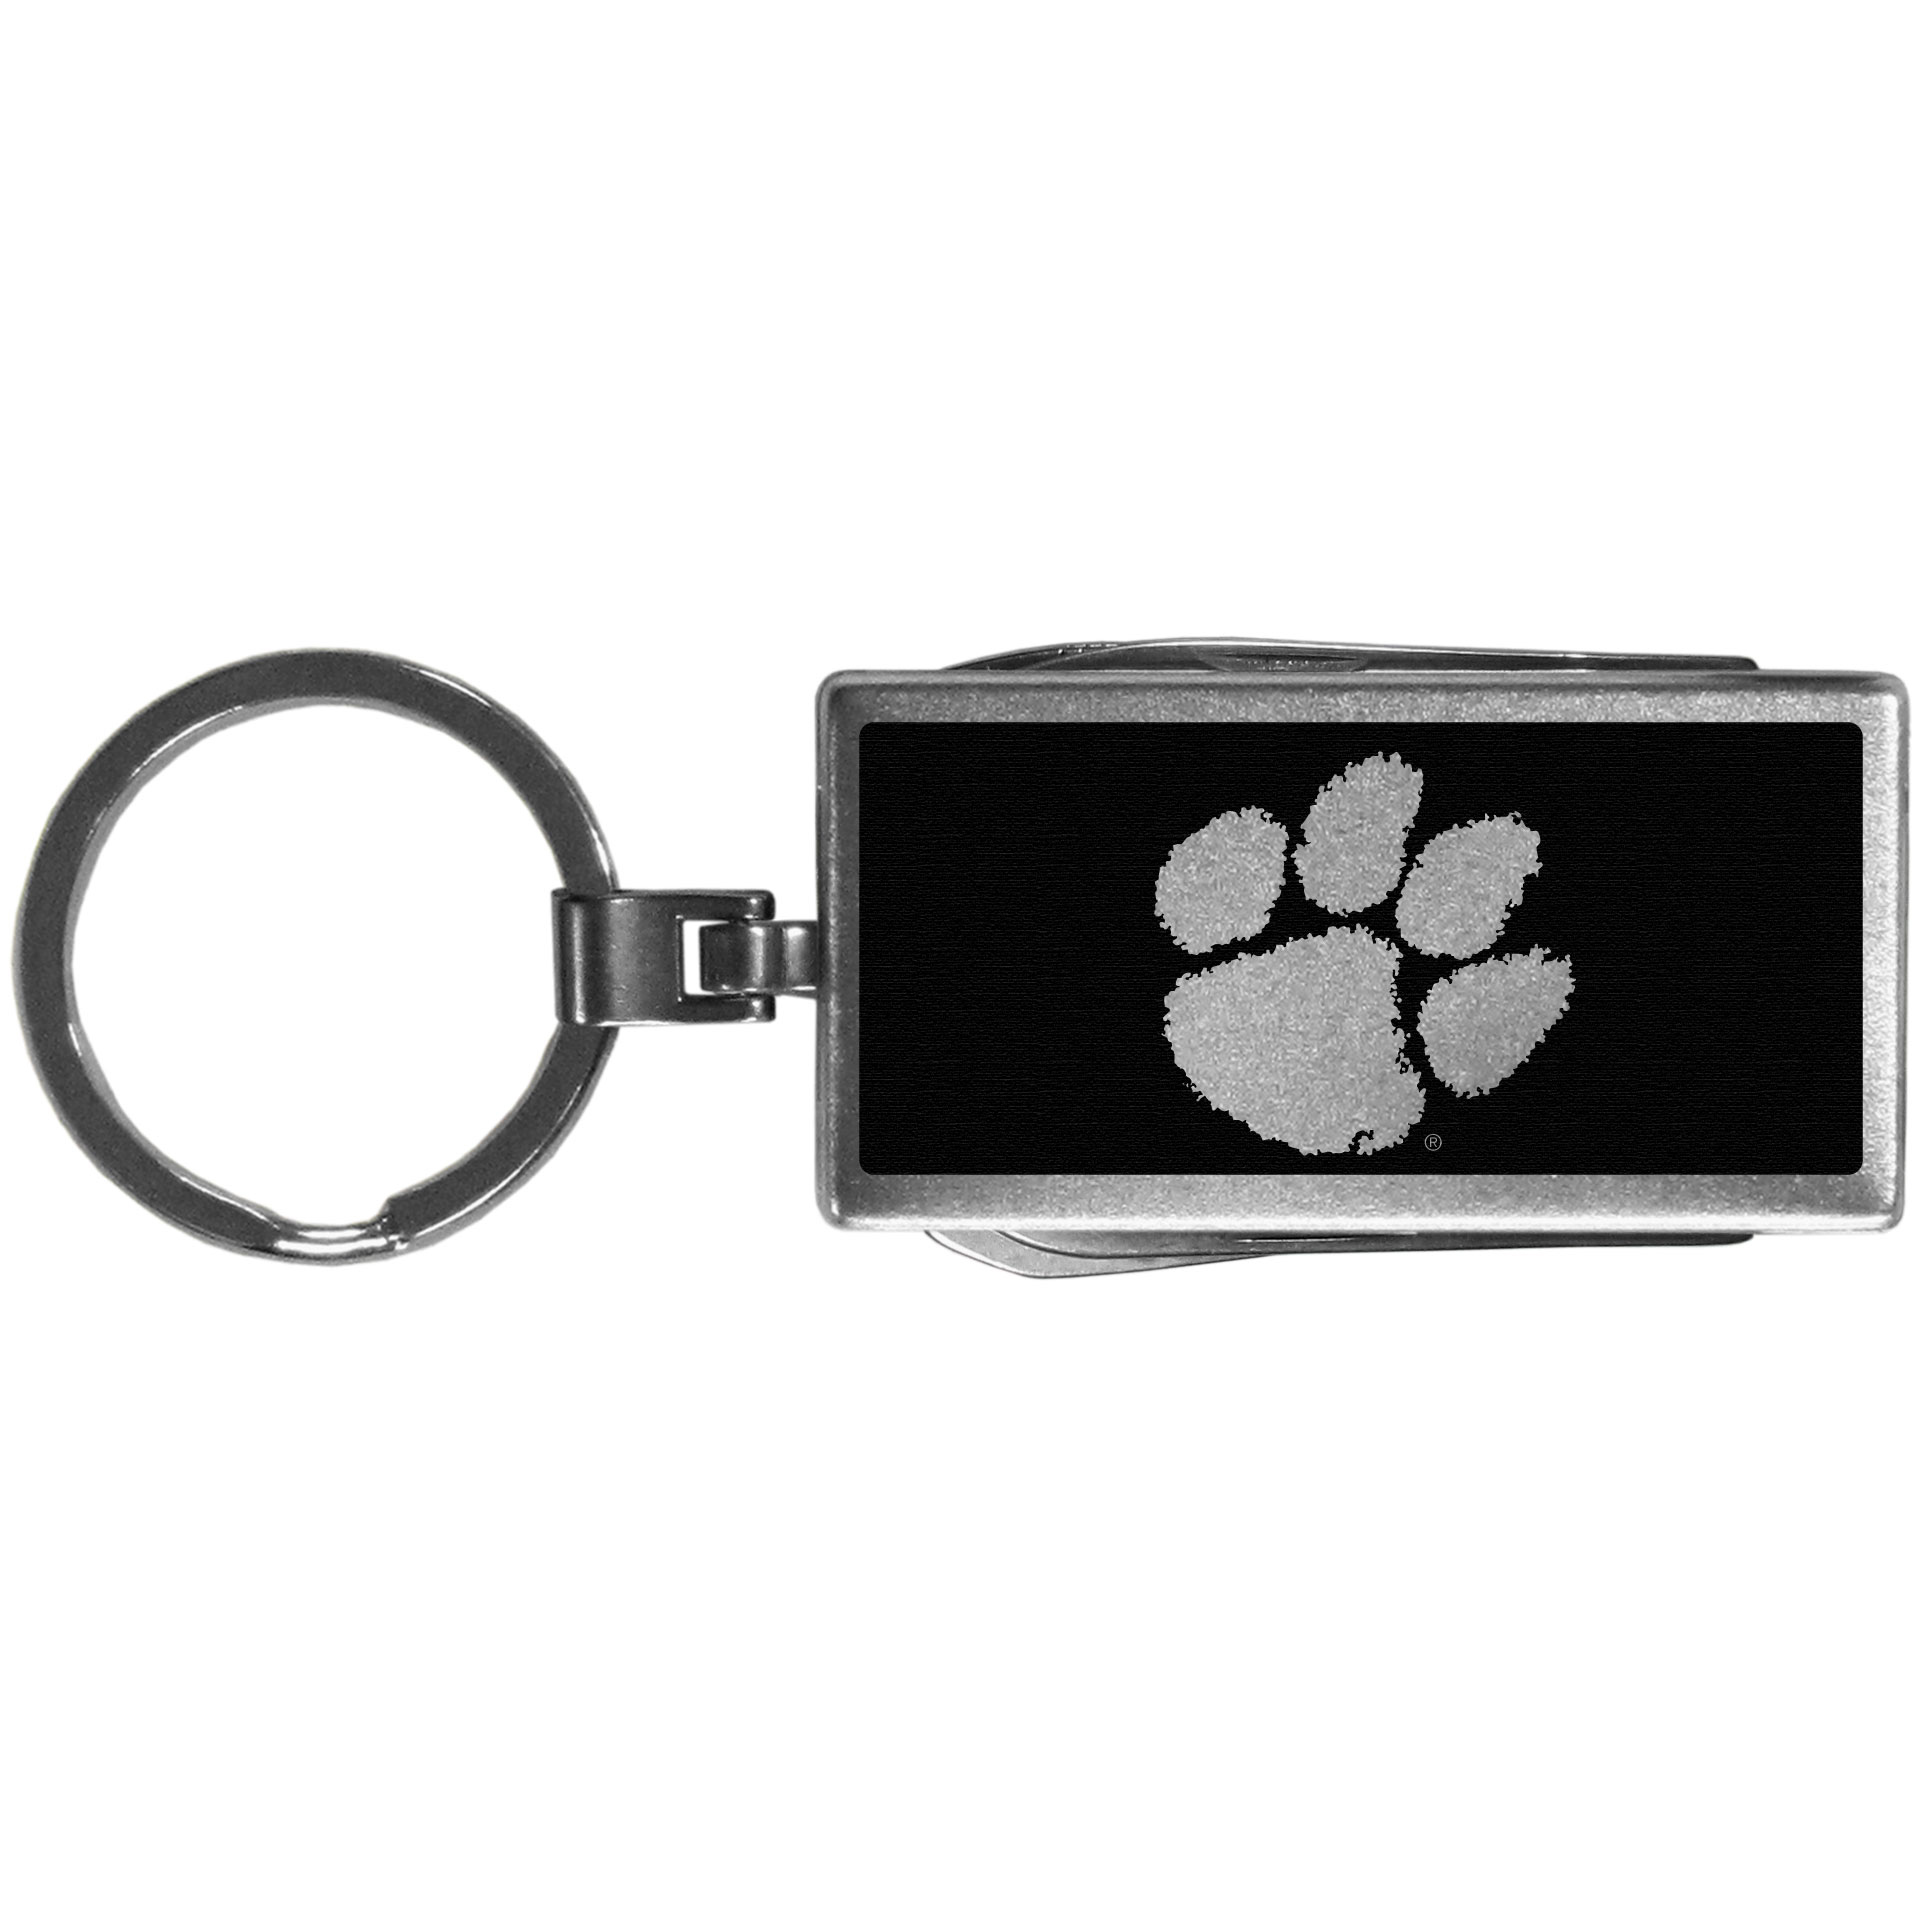 Clemson Tigers Multi-tool Key Chain, Black - Be the hero at the tailgate, camping, or on a Friday night with your Clemson Tigers Multi-Tool Keychain which comes complete with bottle opener, scissors, knife, nail file and screw driver. Be it opening a package or a beverage Siskiyou's Multi-Tool Keychain goes wherever your keys do. The keychain hangs at 4 inches long when closed.